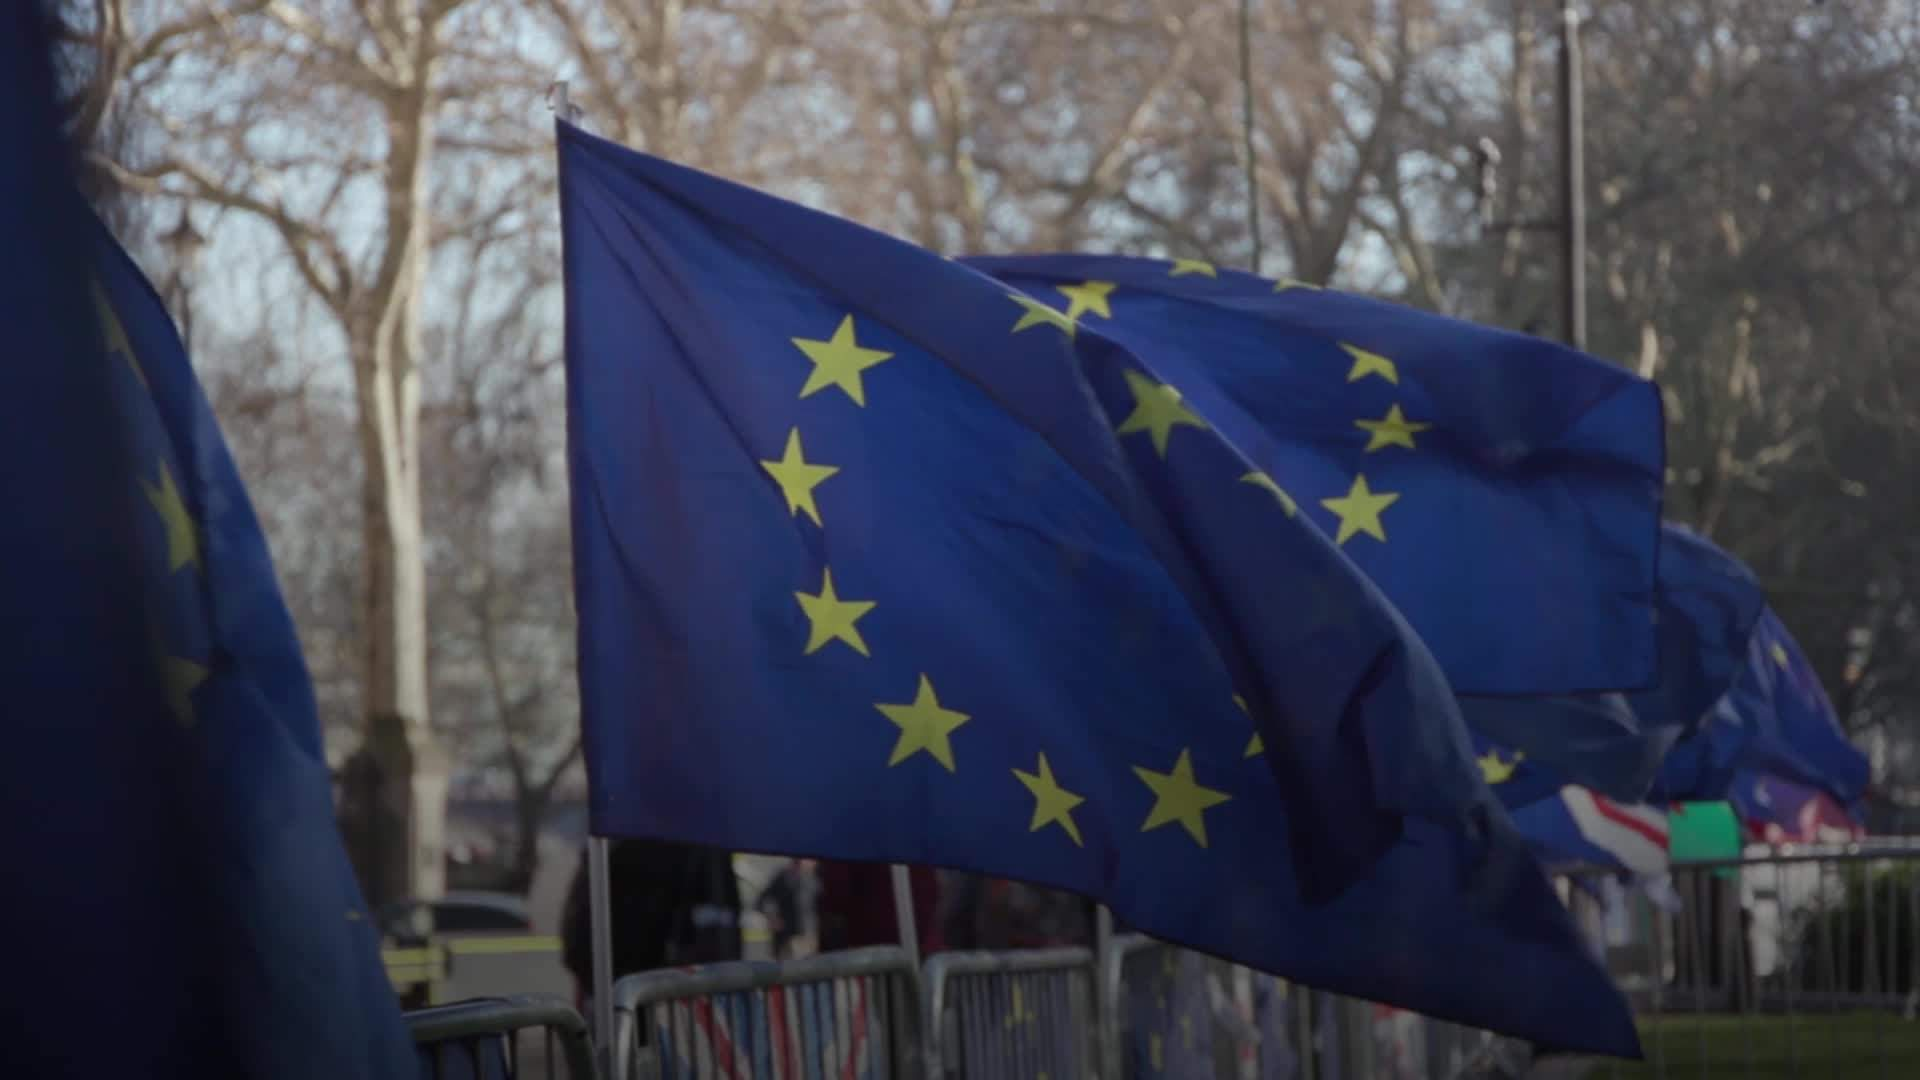 Brexit: 33 days until Britain is scheduled to leave the EU